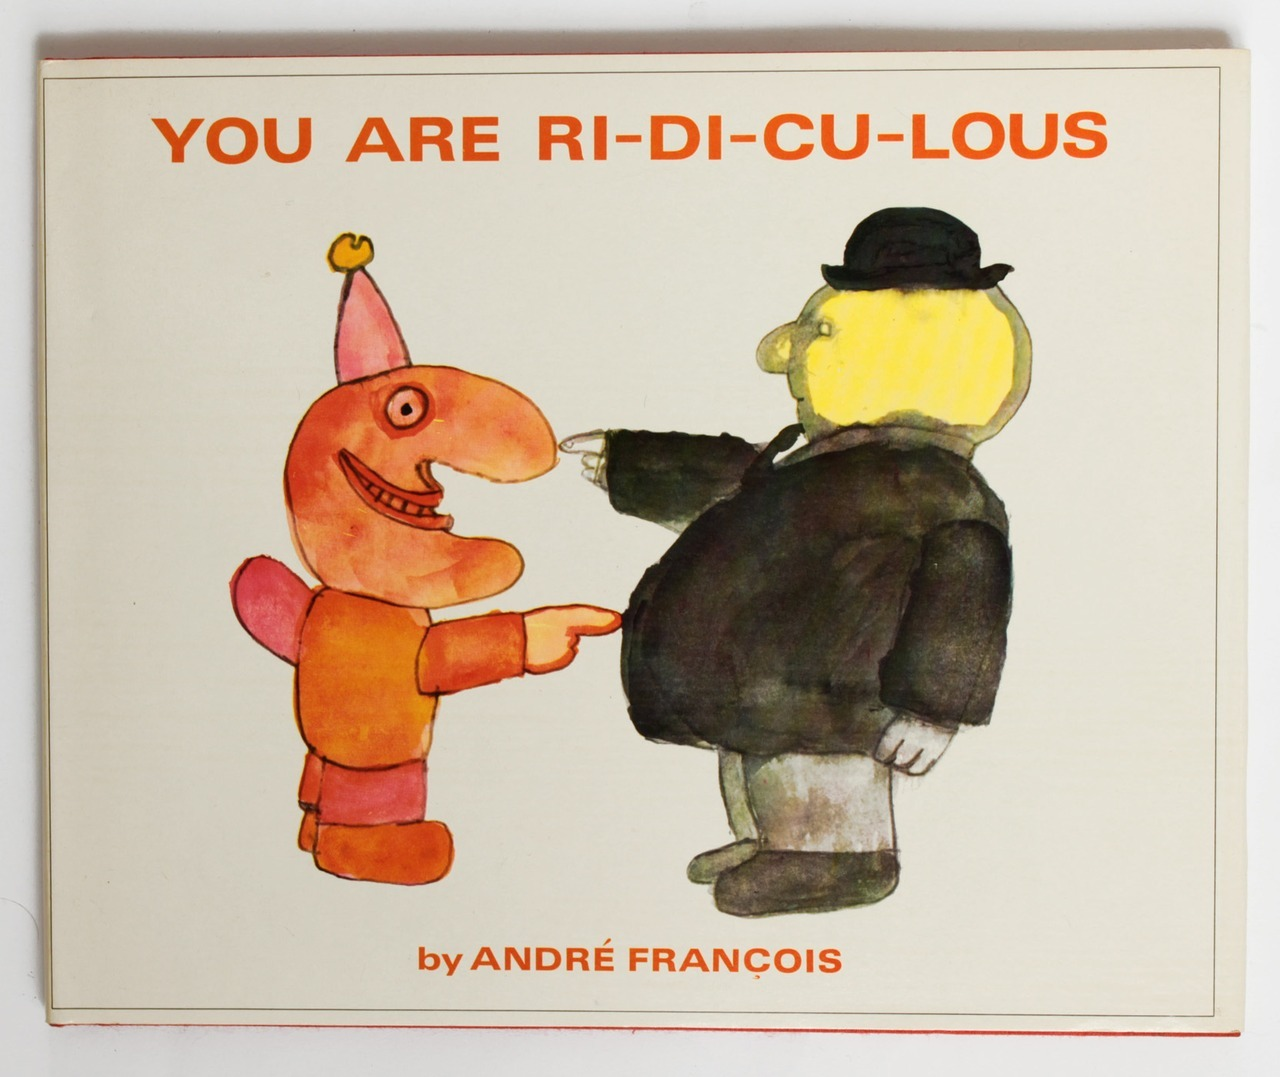 André François, You are ri-di-cu-lous, Pantheon Books [Random House], 1970.First edition, published before the (awful) French translation. Scarce. http://des.livres.autour.pagesperso-orange.fr/cat15-2.pdf